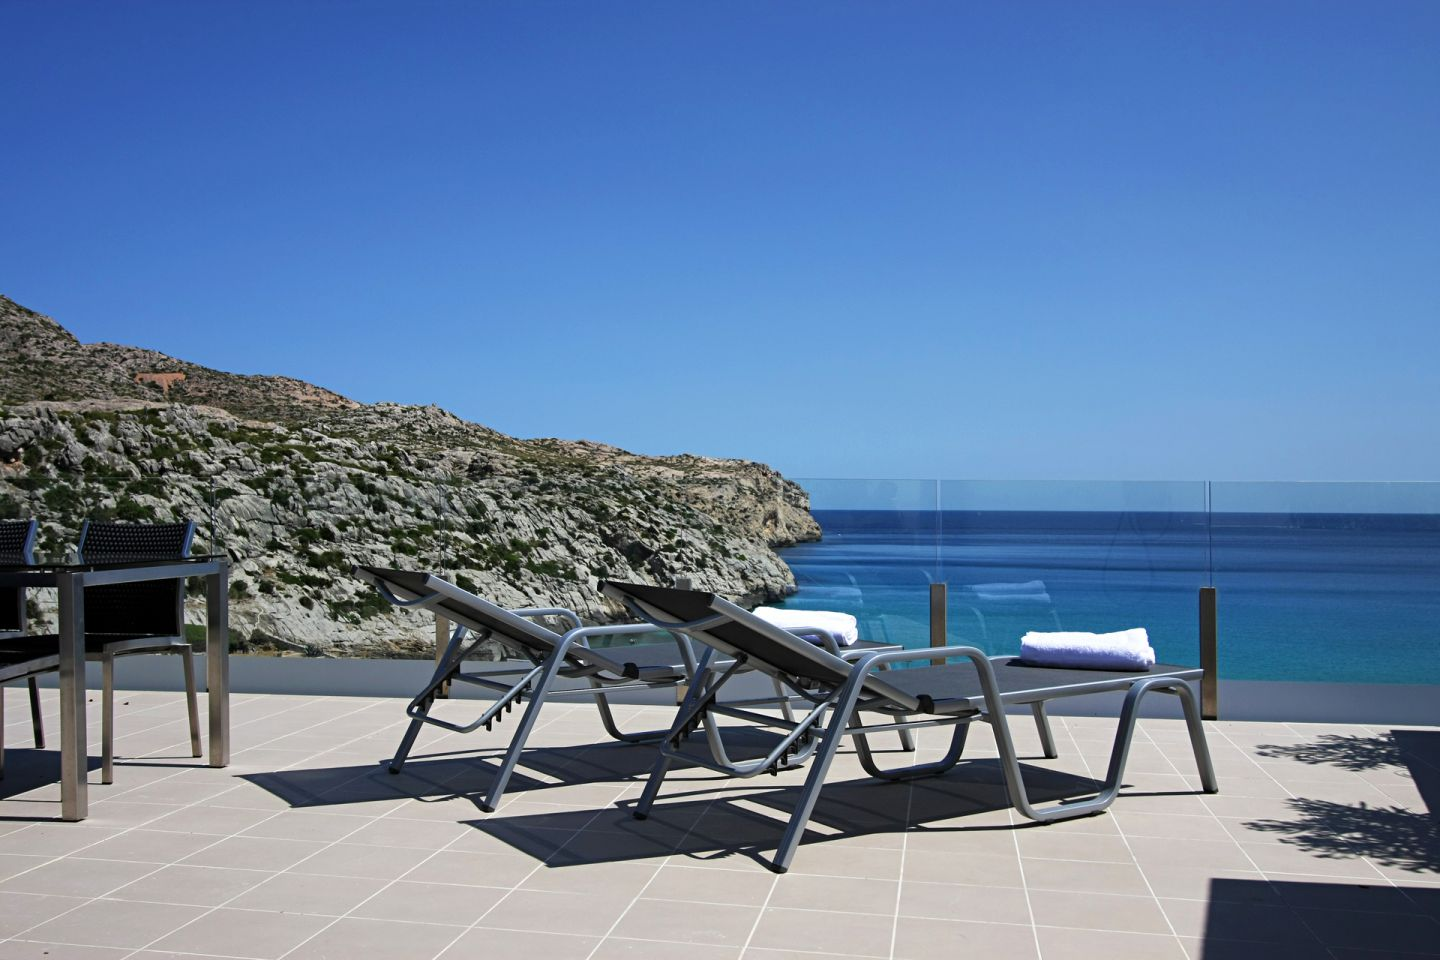 2 Bed Building for sale in Cala San Vicente 0